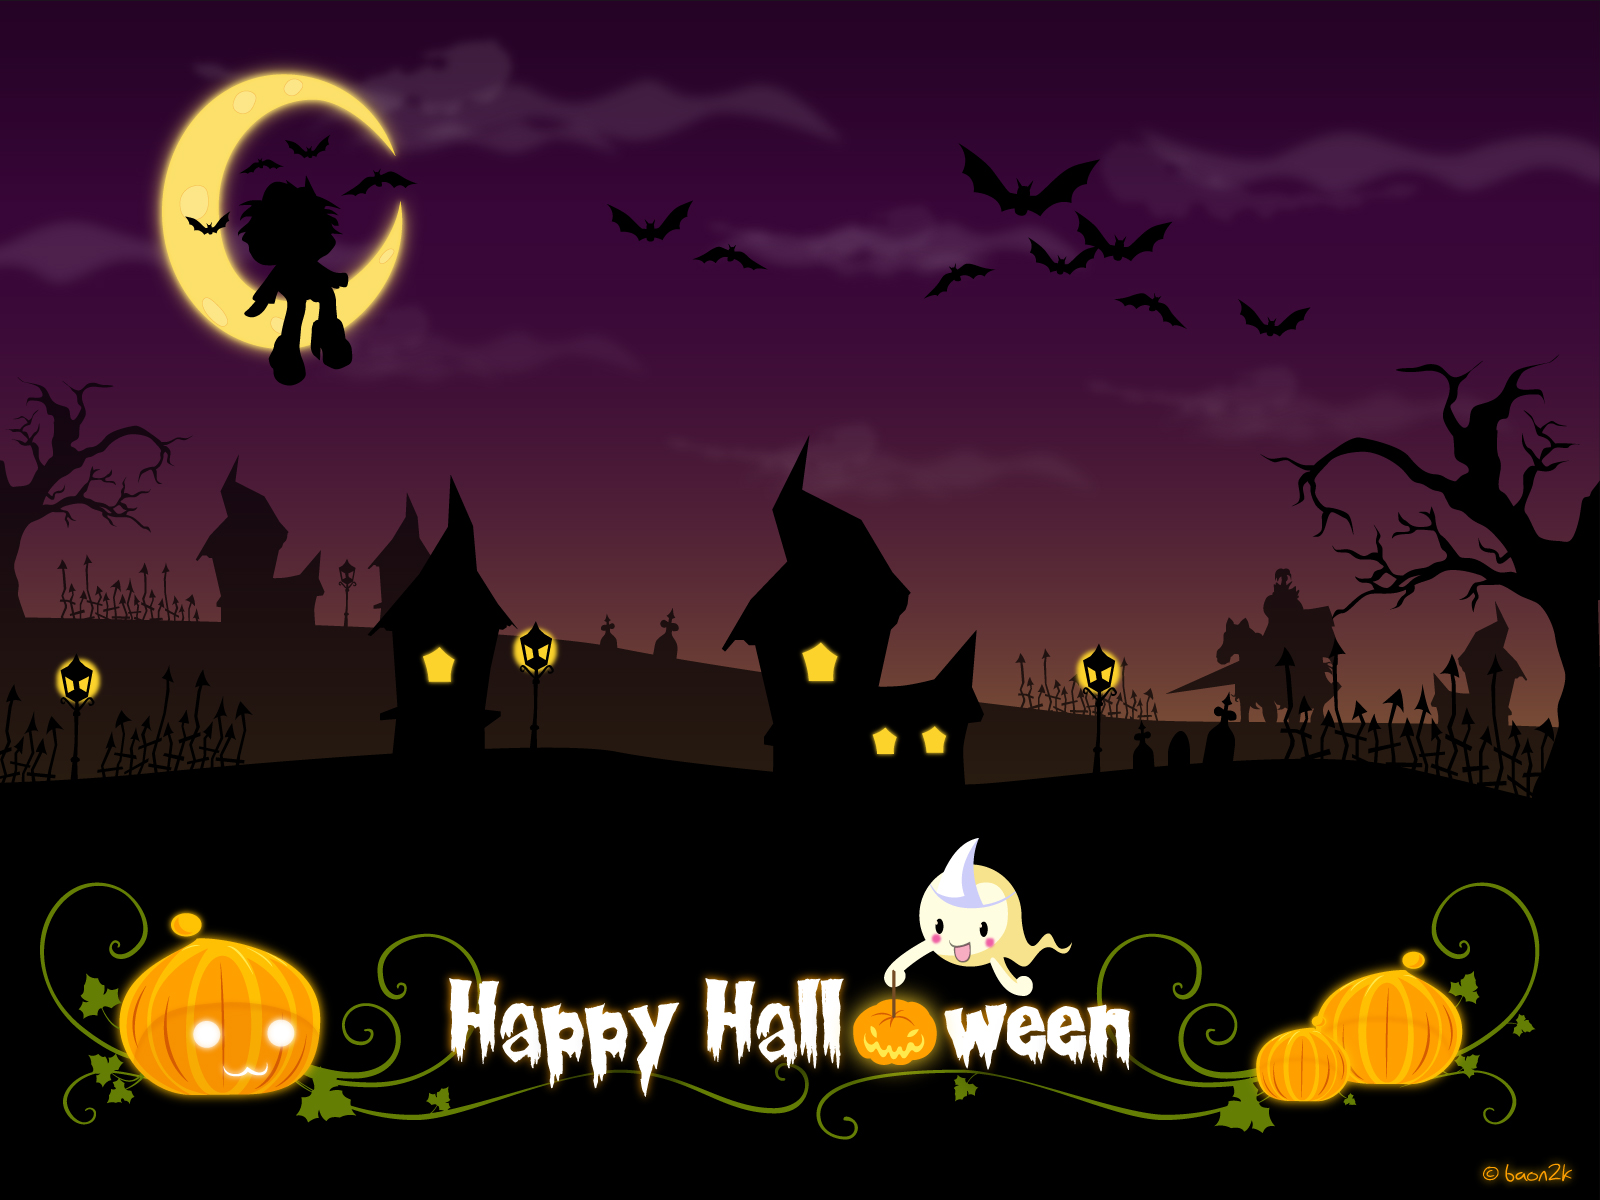 Girly Cute Halloween Wallpaper.Download 50 Cute And Happy Halloween Wallpapers Hd For Free